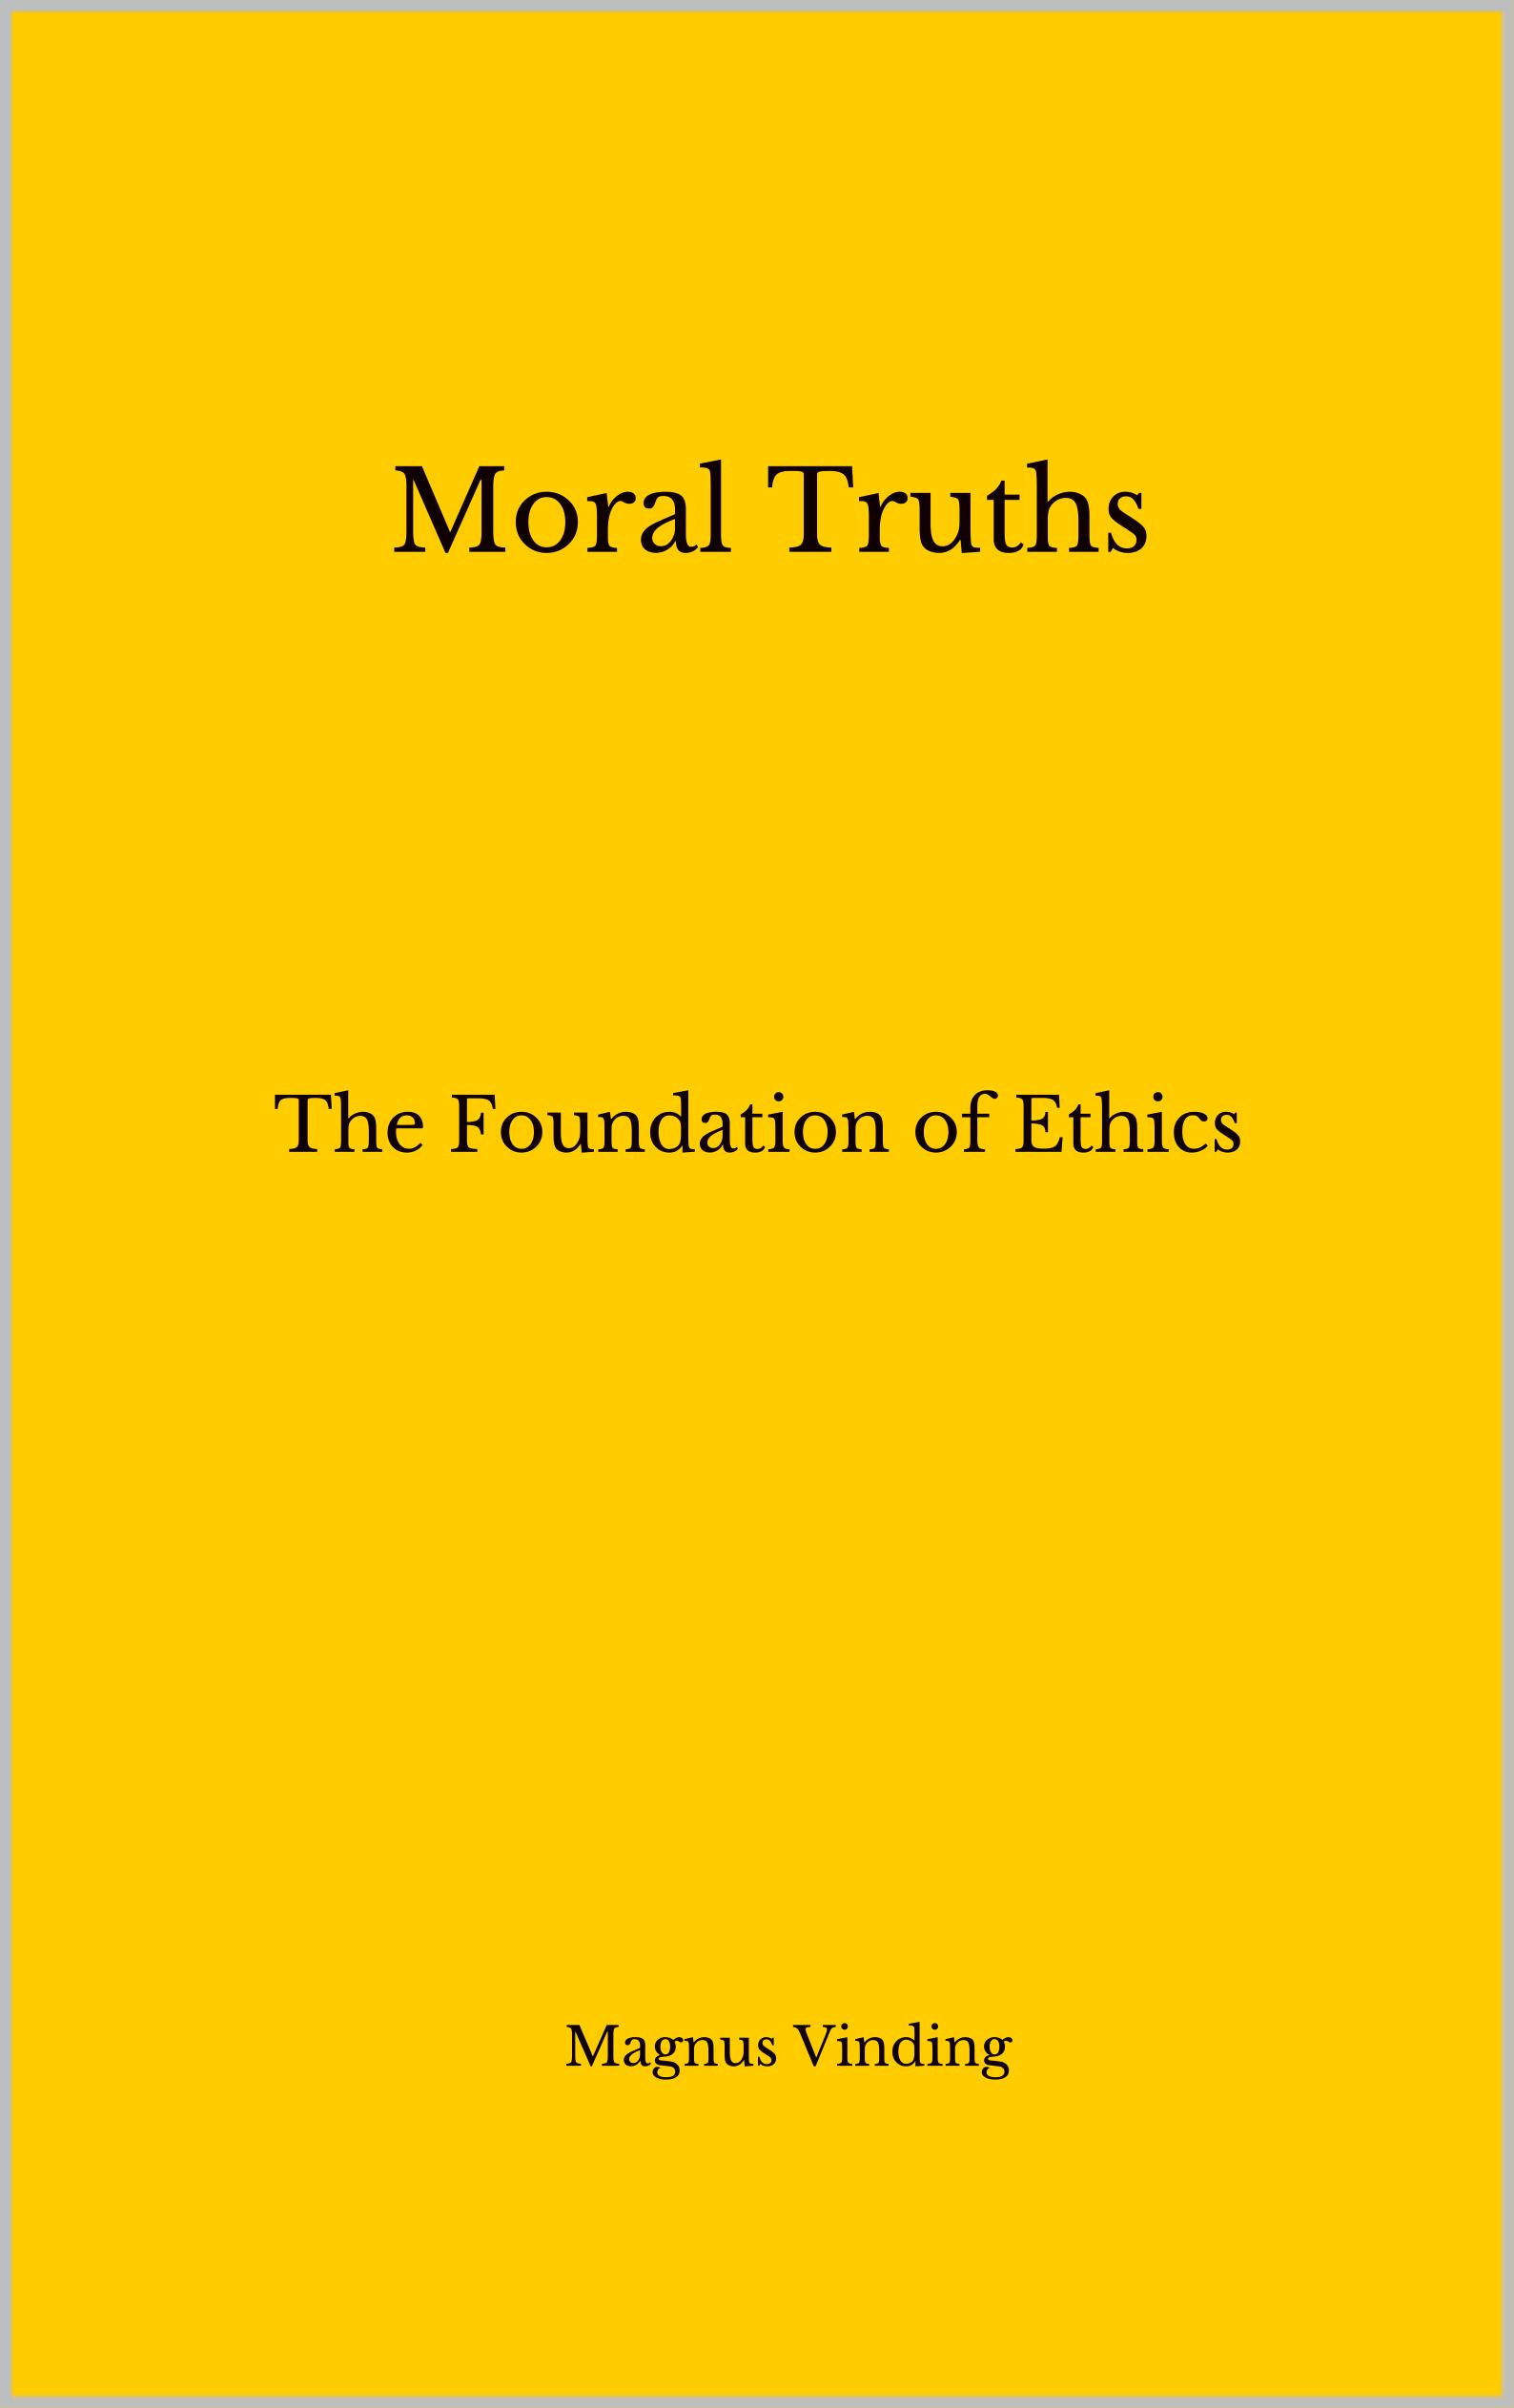 sharia as the foundation of inheritance a guideline for ethics morals and law in society Chapter 1 introduction of islamic muamalat of takaful introduction of islamic muamalat introduction to shariah objective of shariah shariah is the entire body of islamic law, and the term literally means the way to the water.